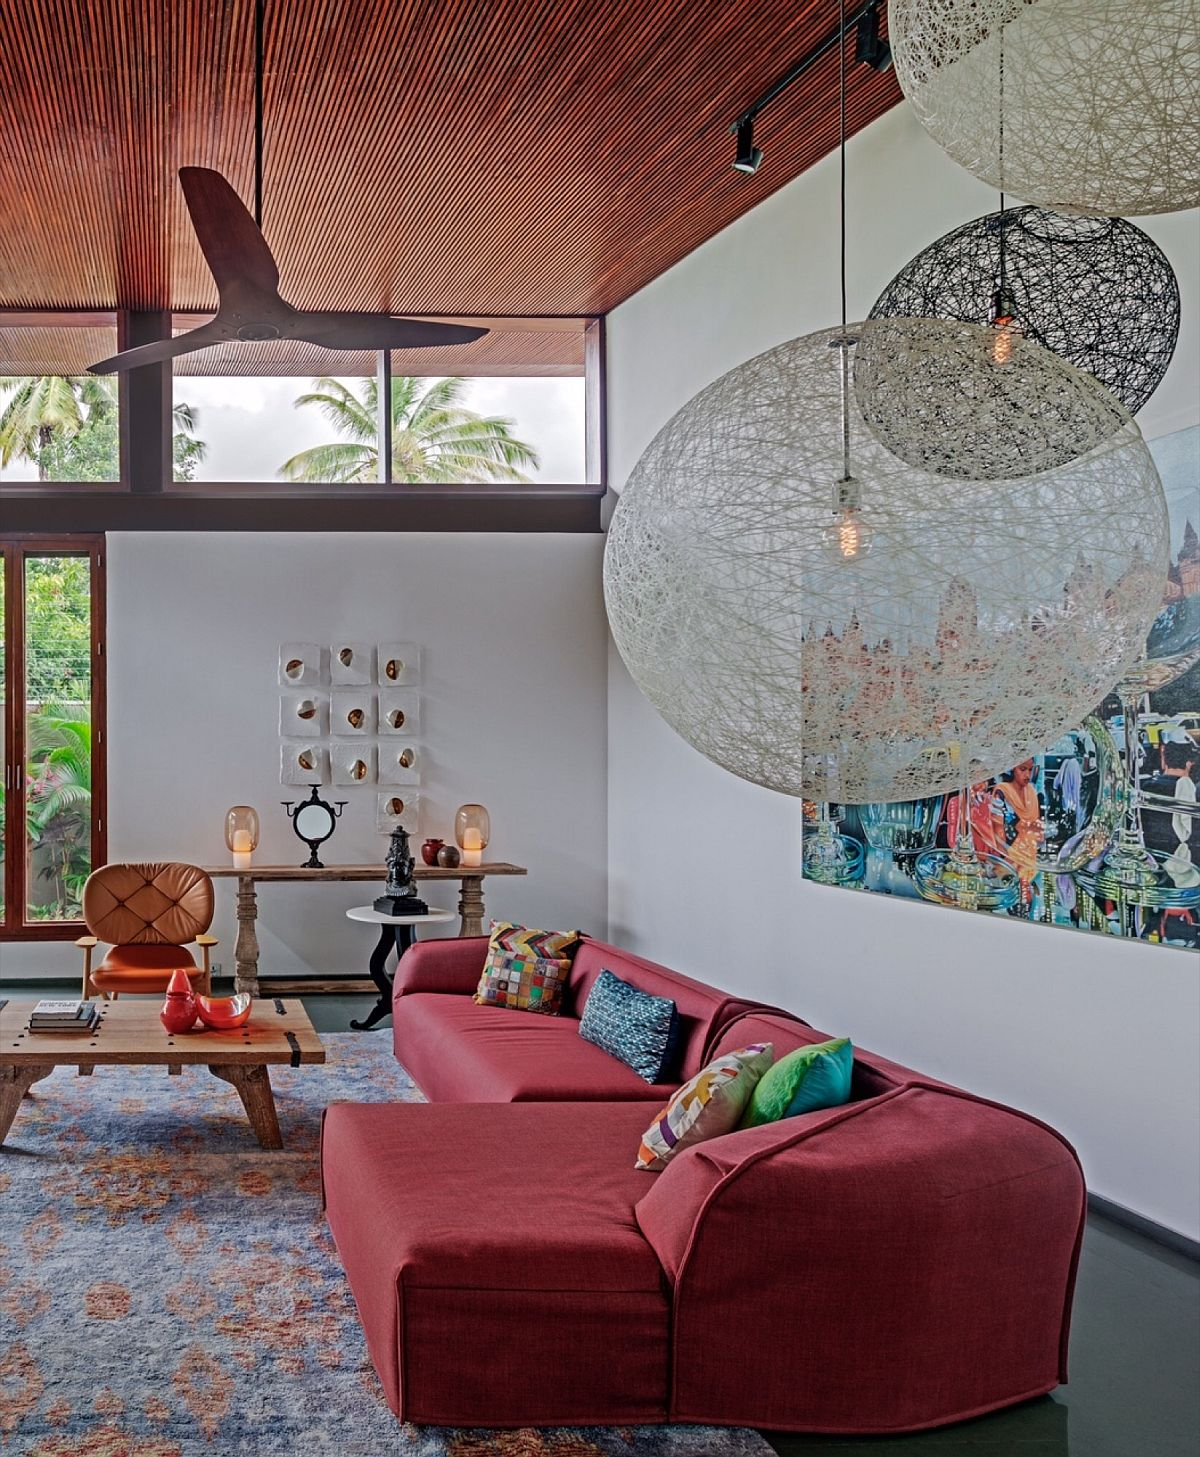 Timber and glass bring a balance of elements to the contemporary home in India